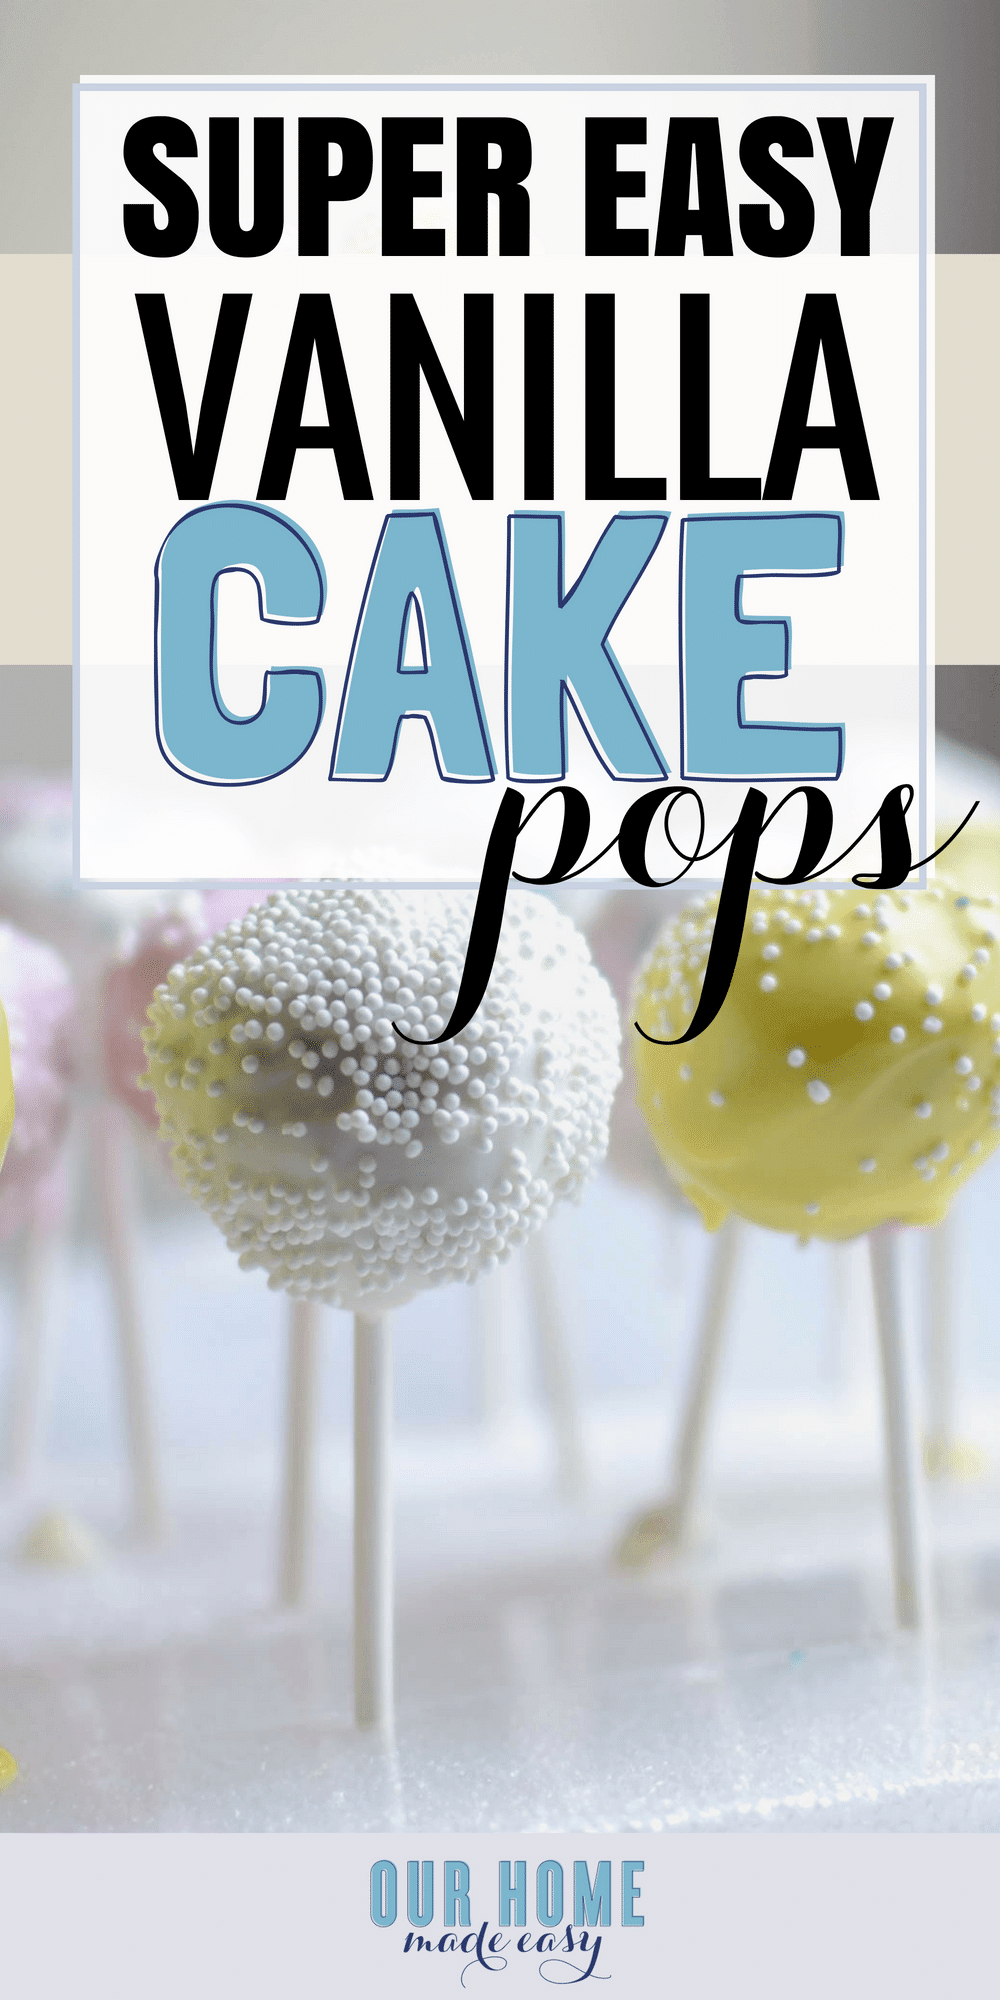 These cute cake pops are super easy to make one afternoon. The hardest part? Waiting for them to be ready! Click to see the simple recipe! #dessert #cake #easter #starbucks